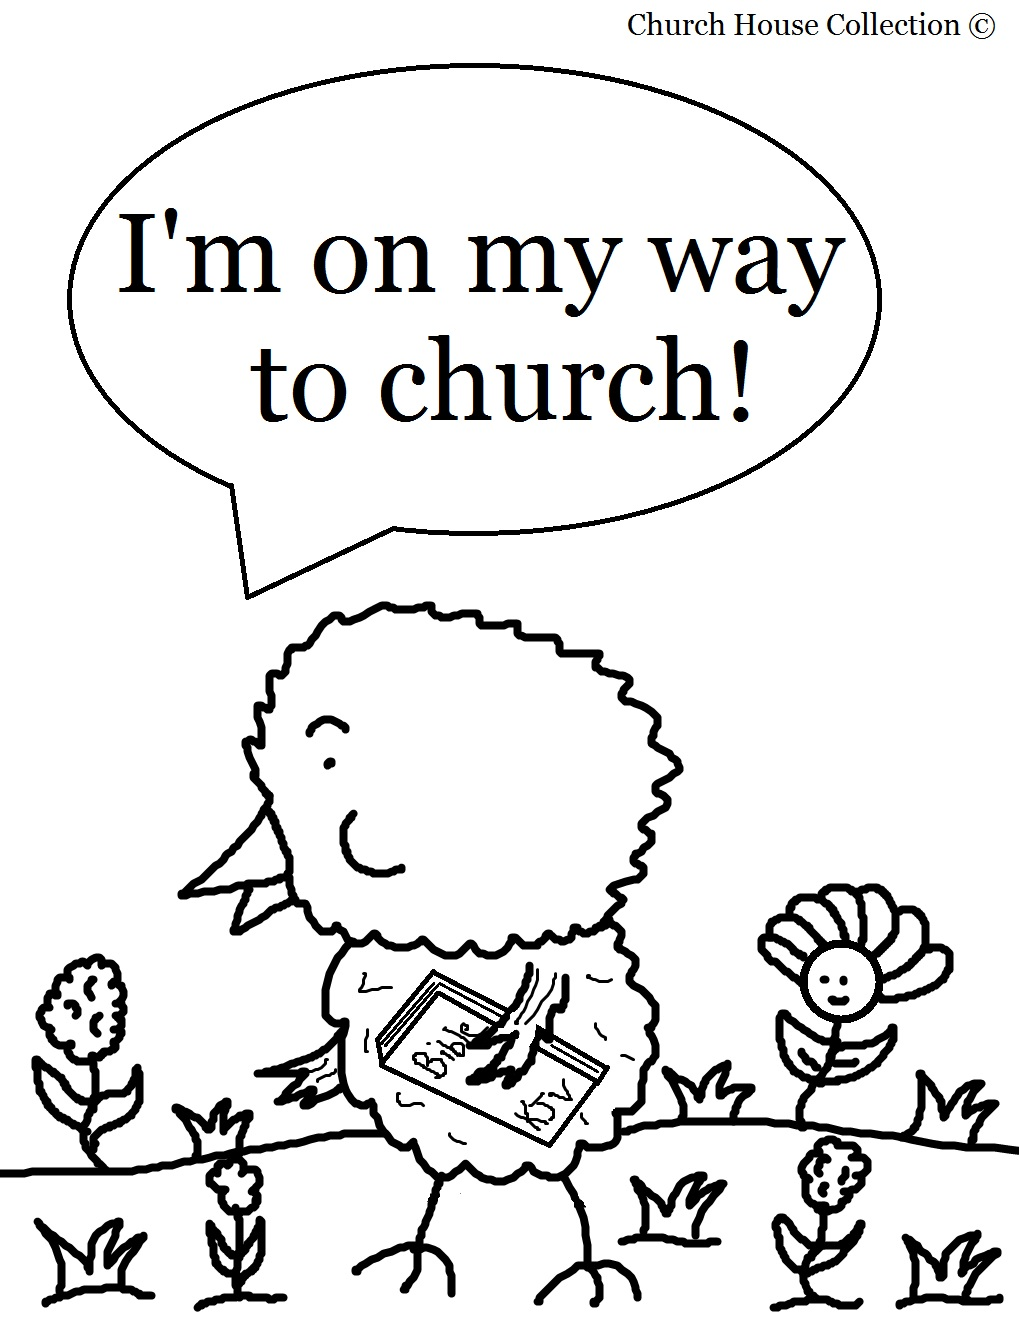 Bible-Based Sunday School Coloring Pages for Children - christian coloring pages for children